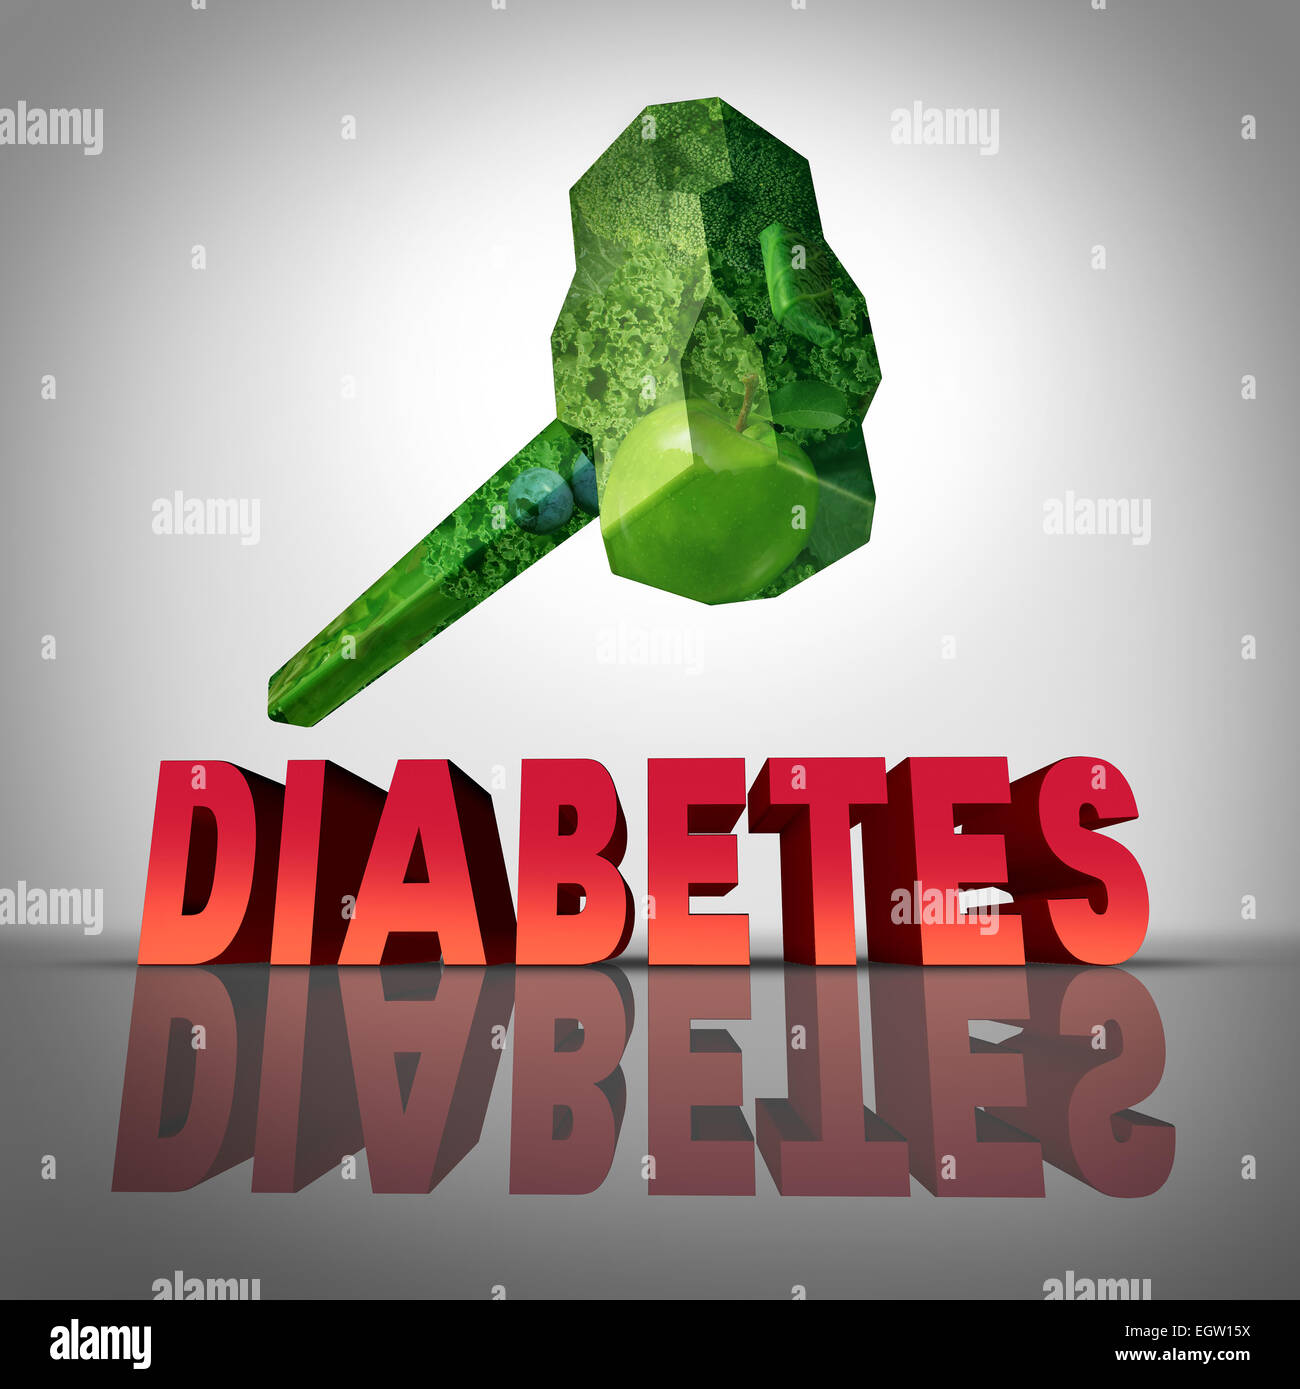 Beating diabetes natural treatment concept as a hammer made of healthy fruits and vegetables destroying the diabetic - Stock Image